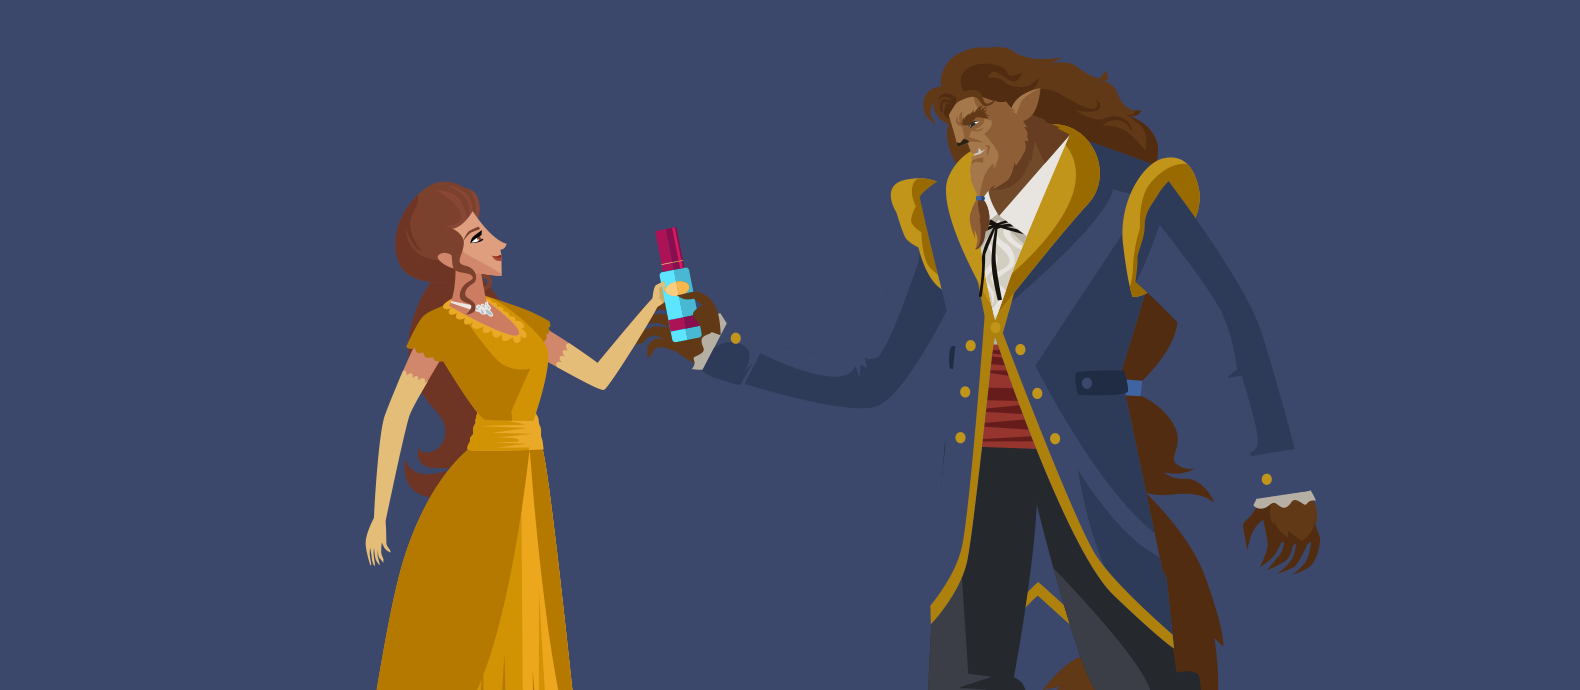 Beauty and the Beast: Protecting Small-scale Luxury Cosmetics Brands' IP from Counterfeiters and Competitors